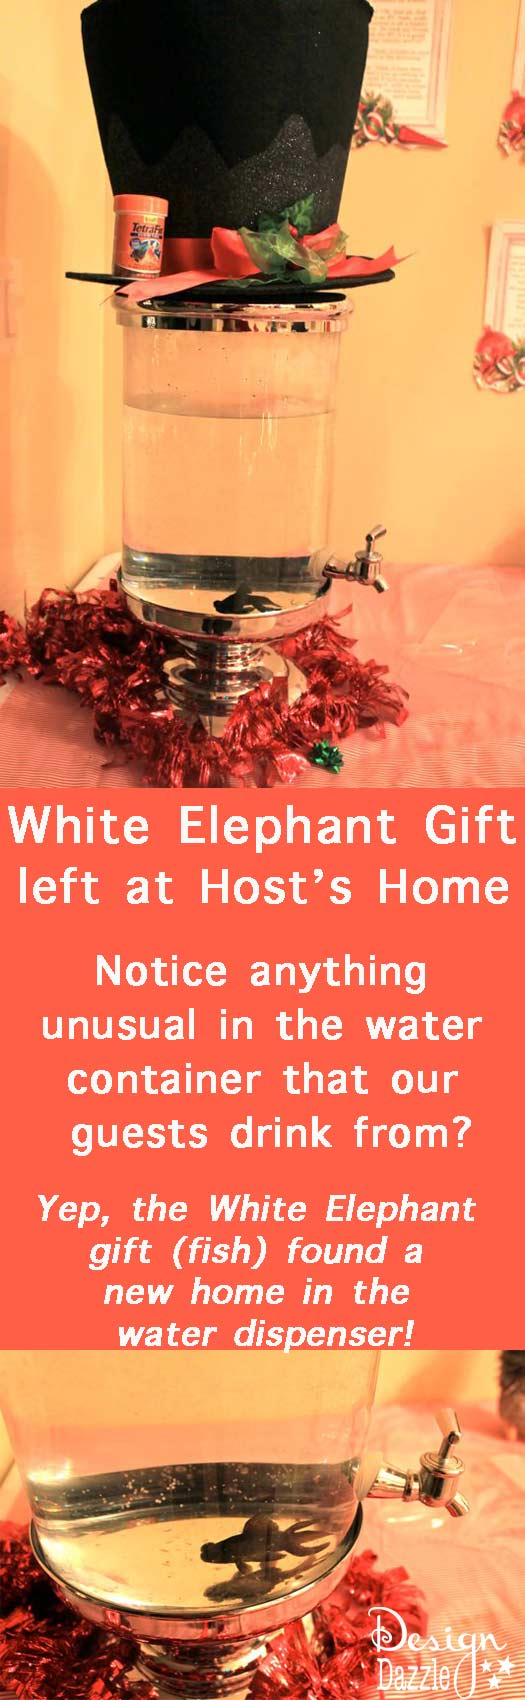 White Elephant Gift Exchange Prank - Design Dazzle